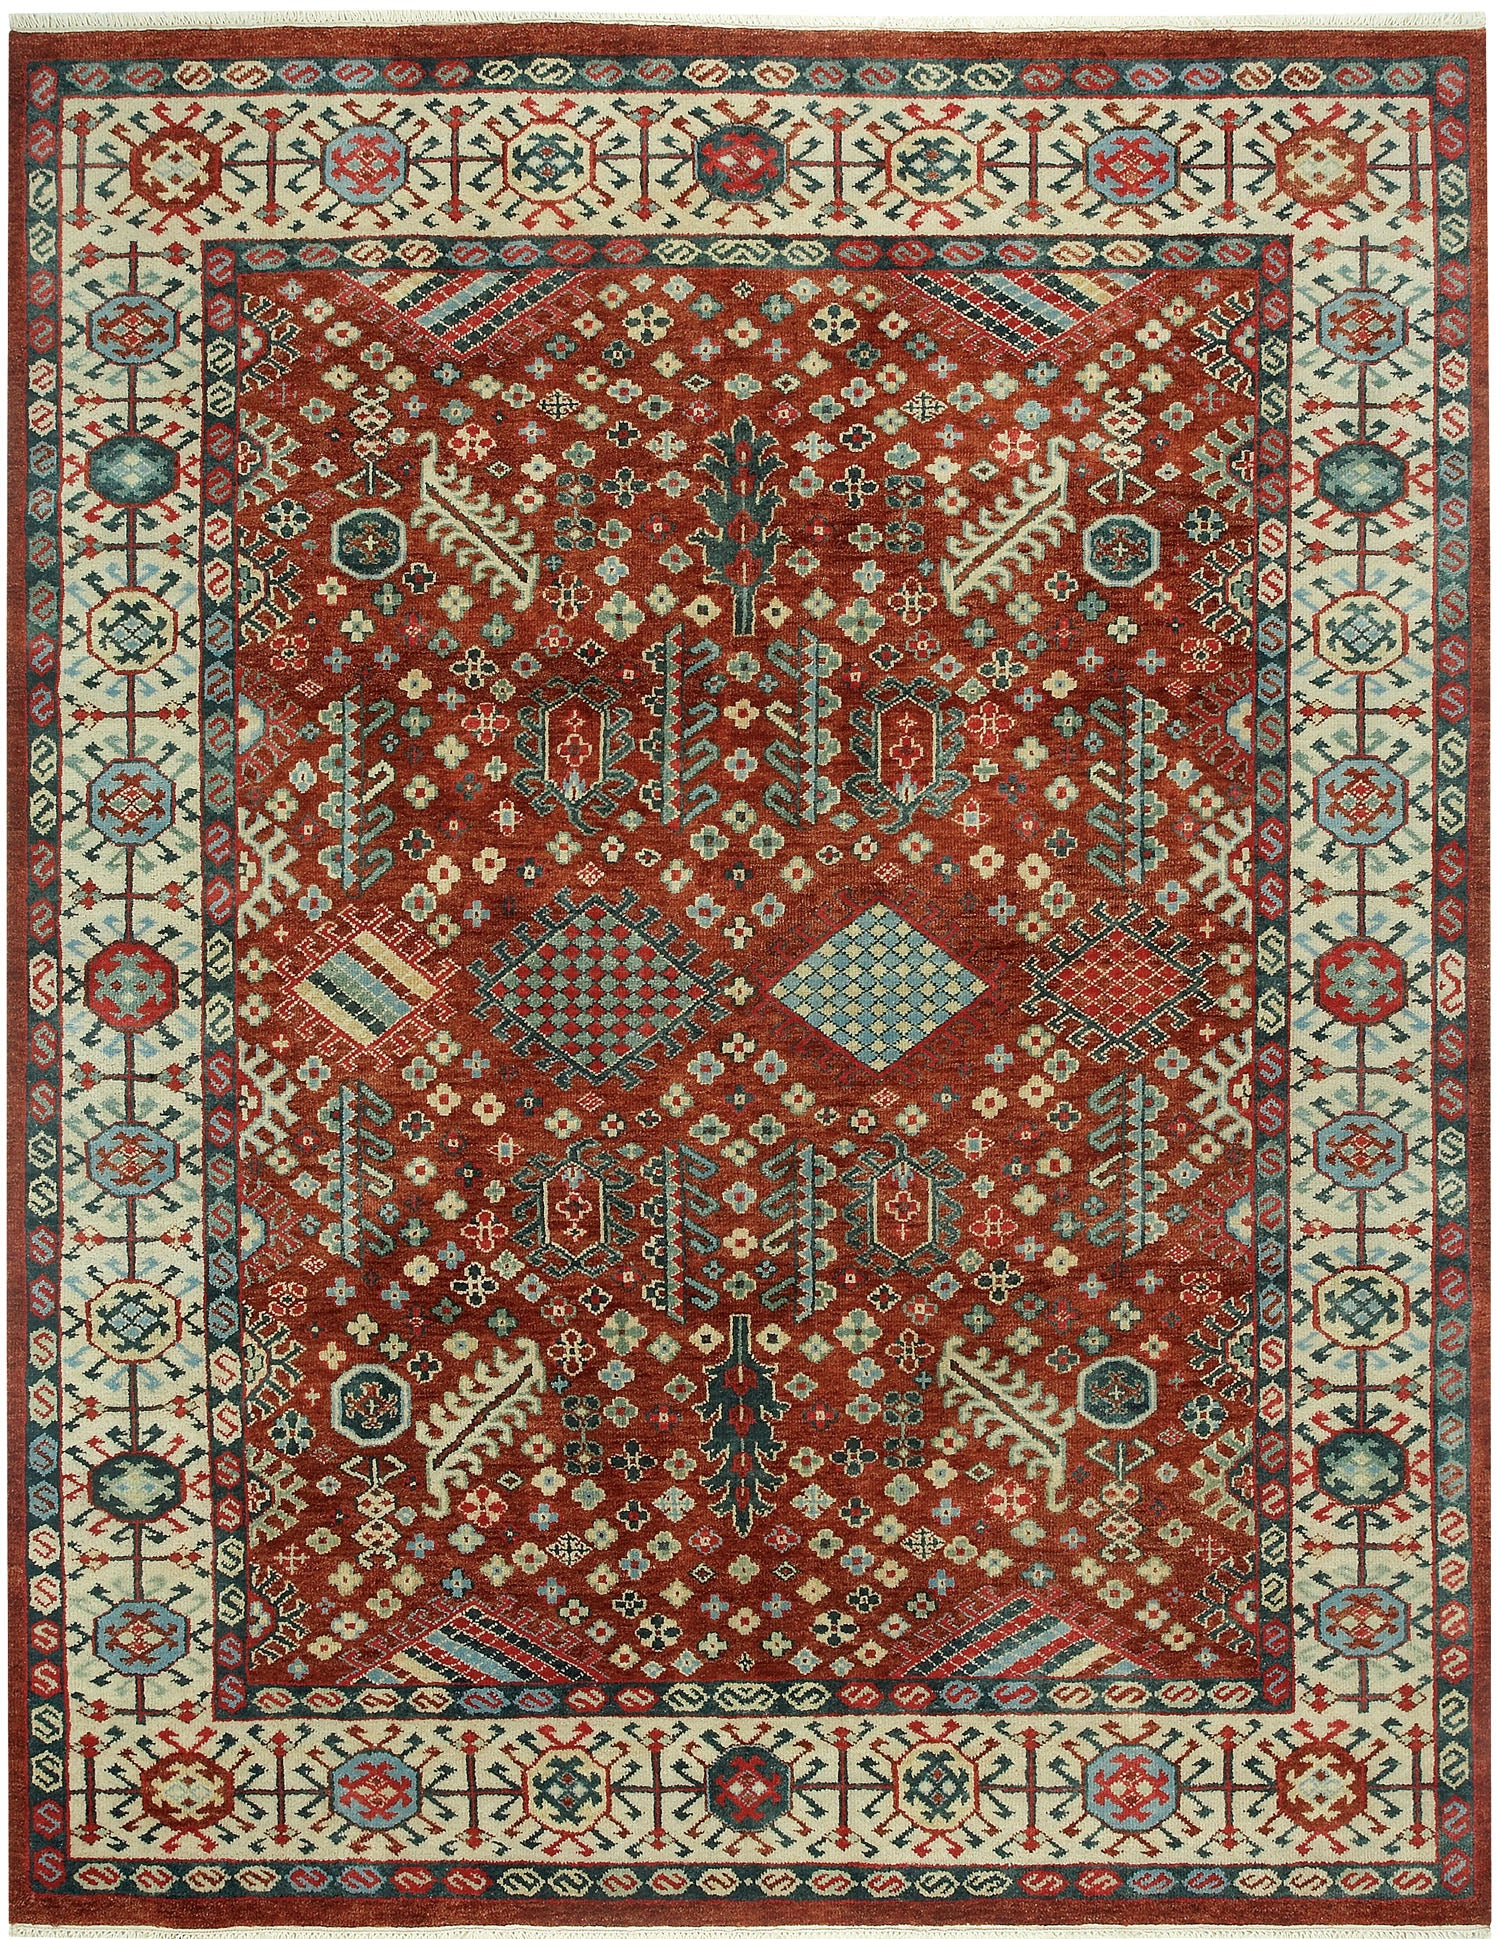 Capel Heritage Shiraz 1903 Red 575 Area Rug main image